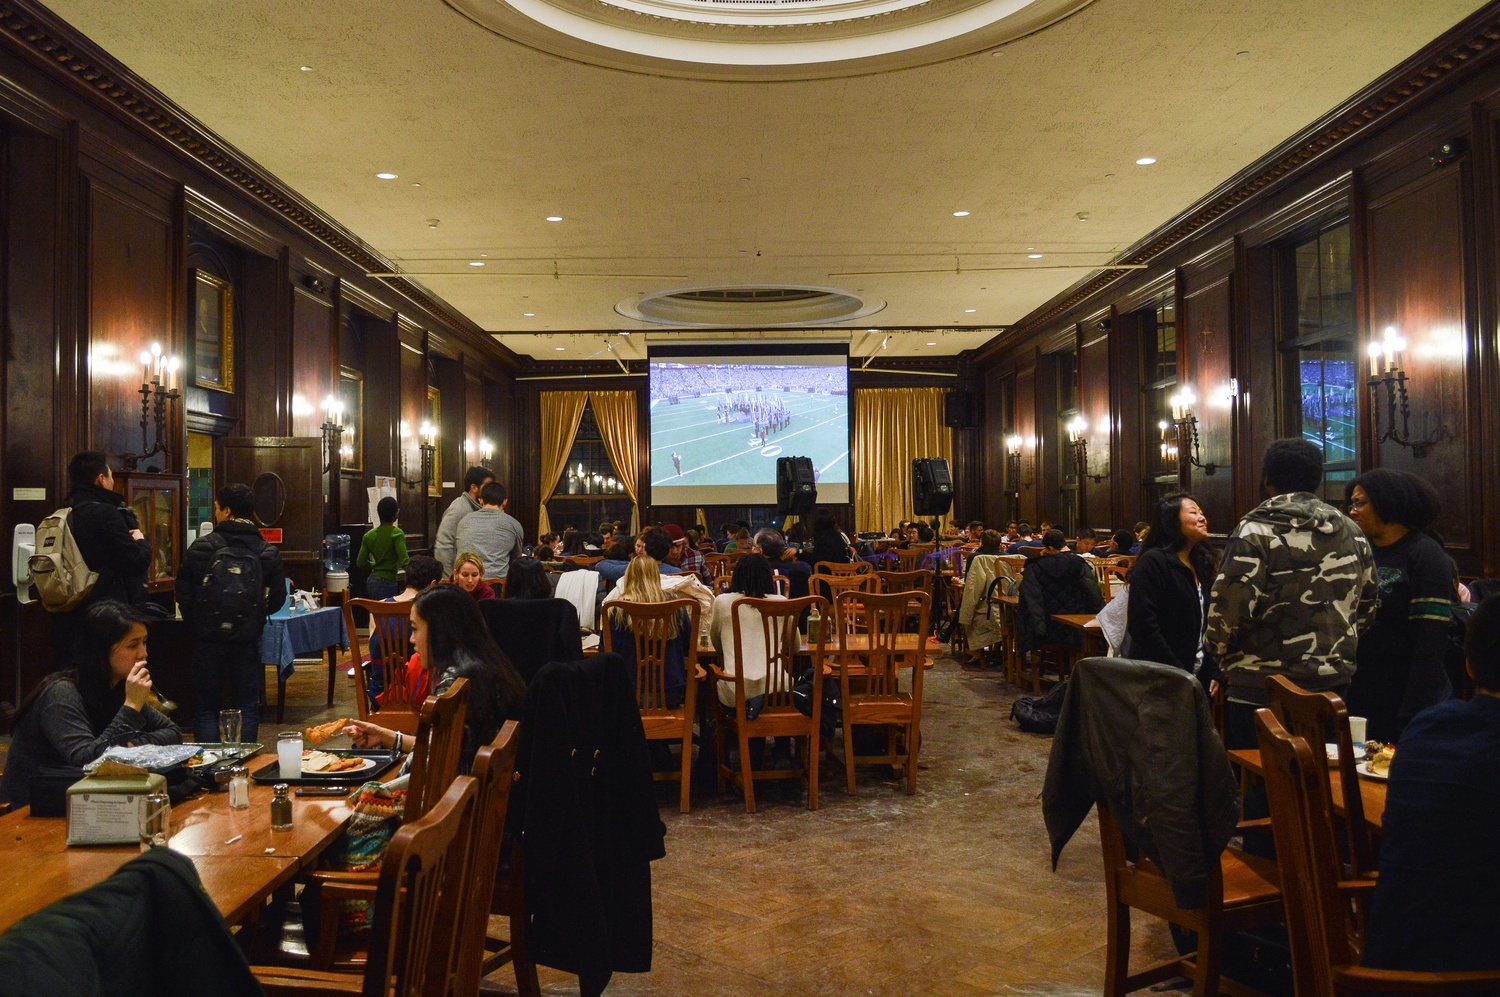 A screen in the back of the Adams House dining hall displays a live screening of the 49th Super Bowl as Adams residents settle for dinner.